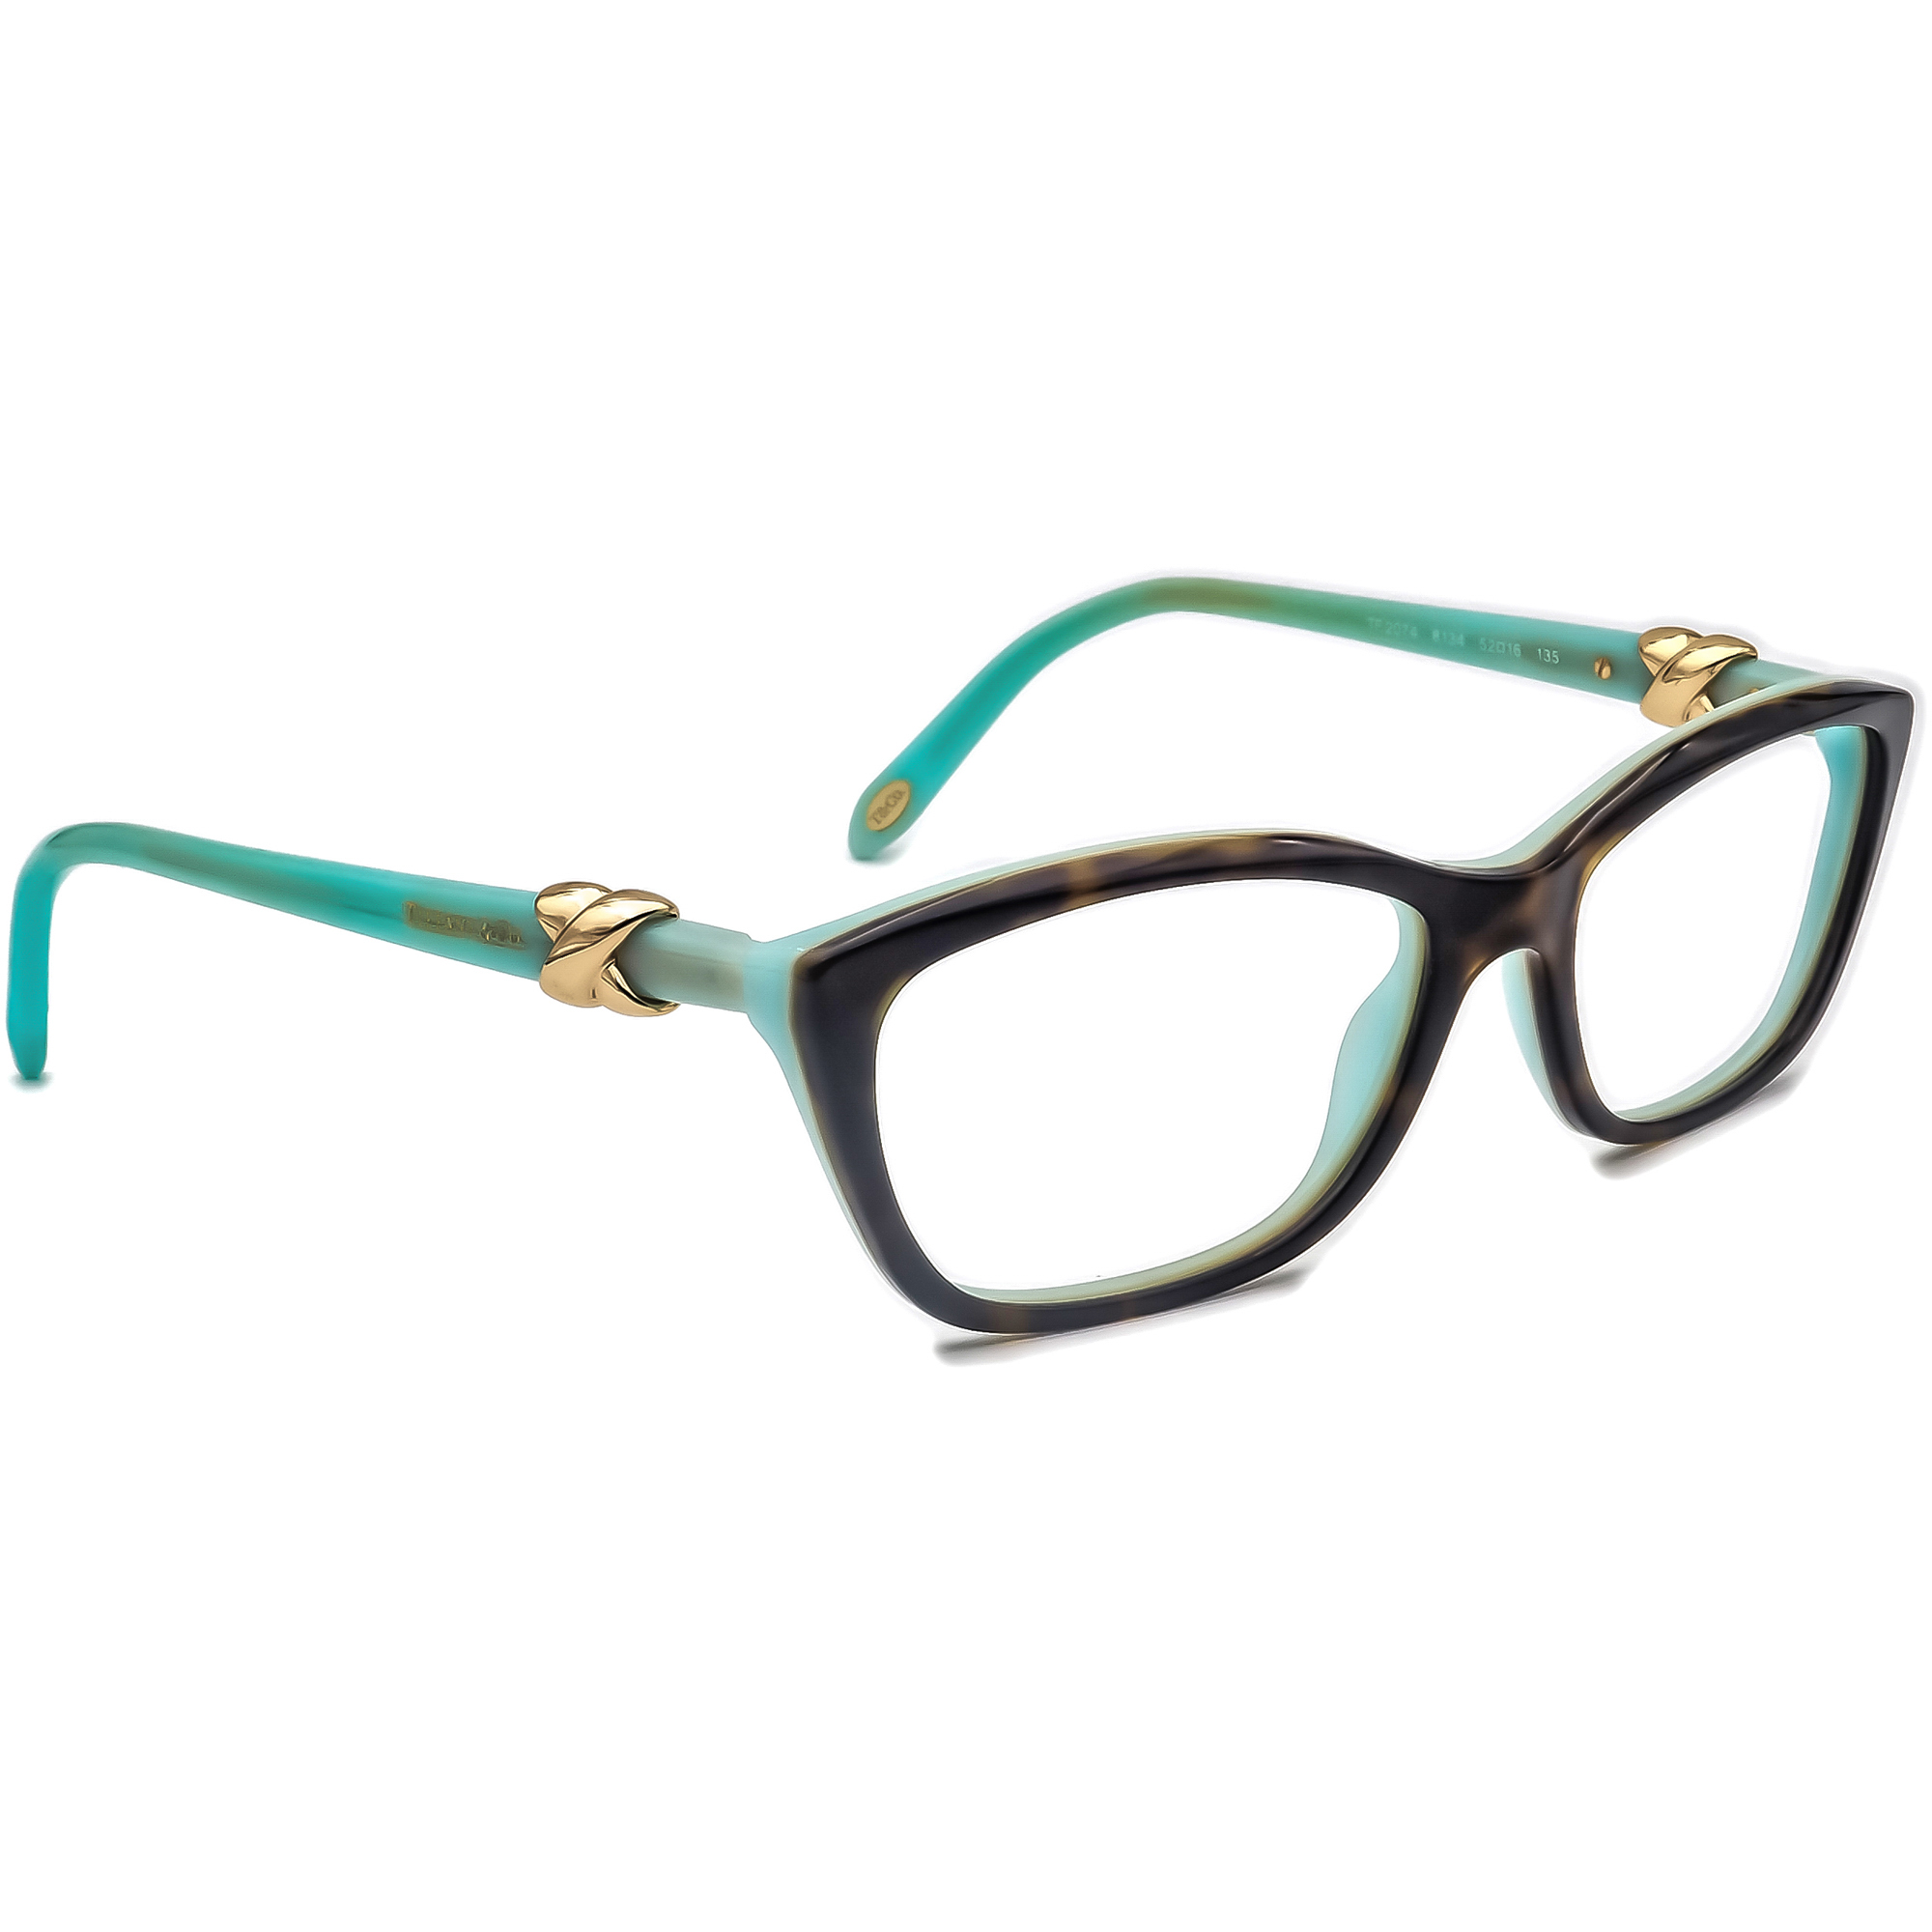 Tiffany & Co. TF 2074 8134 Eyeglasses